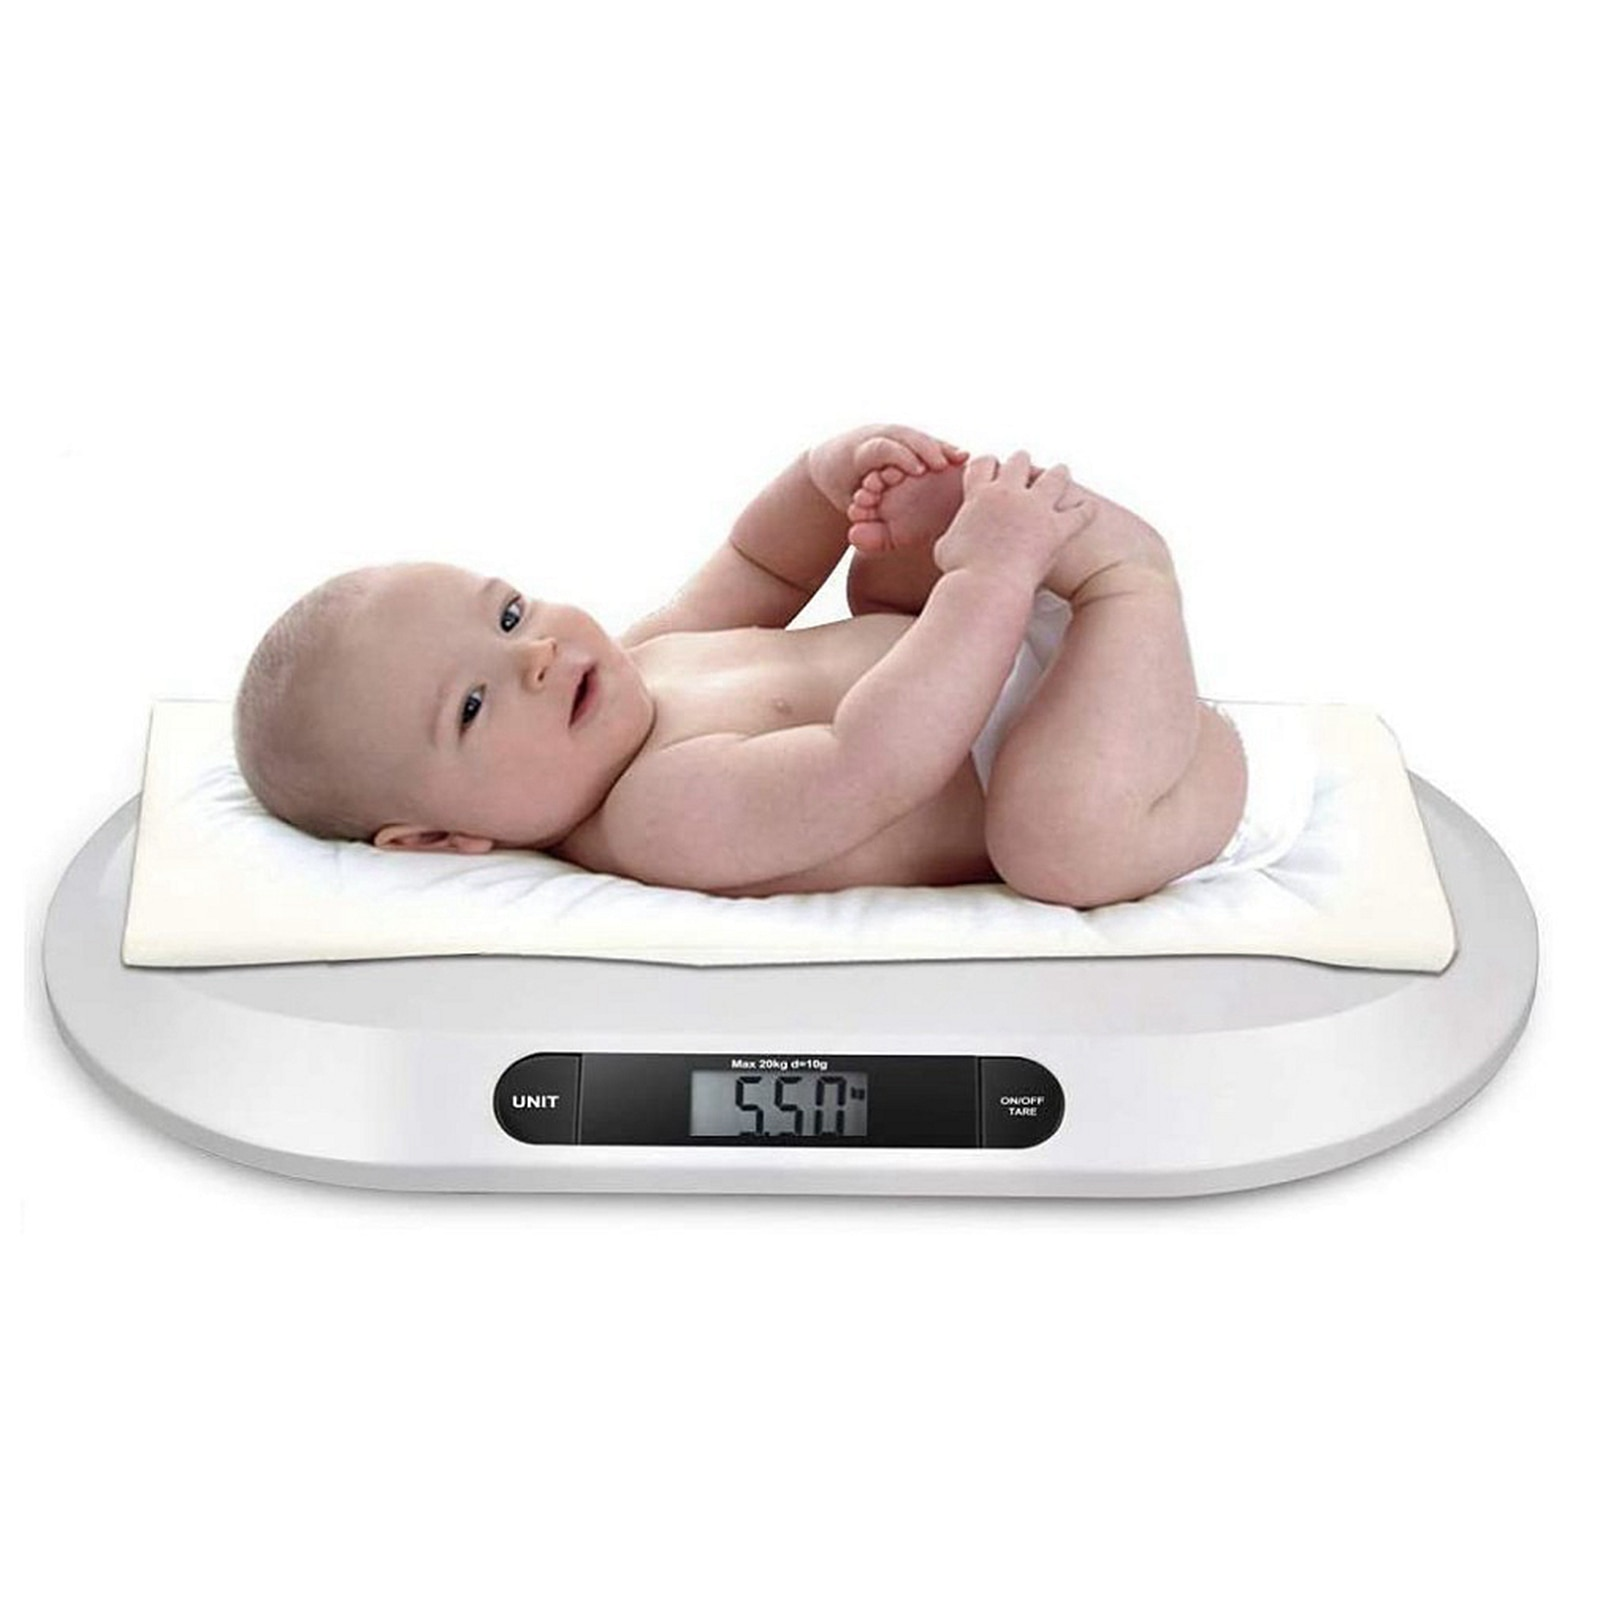 Digital Baby Scale Infant Pet Dog Small Pets Weighing Scales Max 20kg /44lb